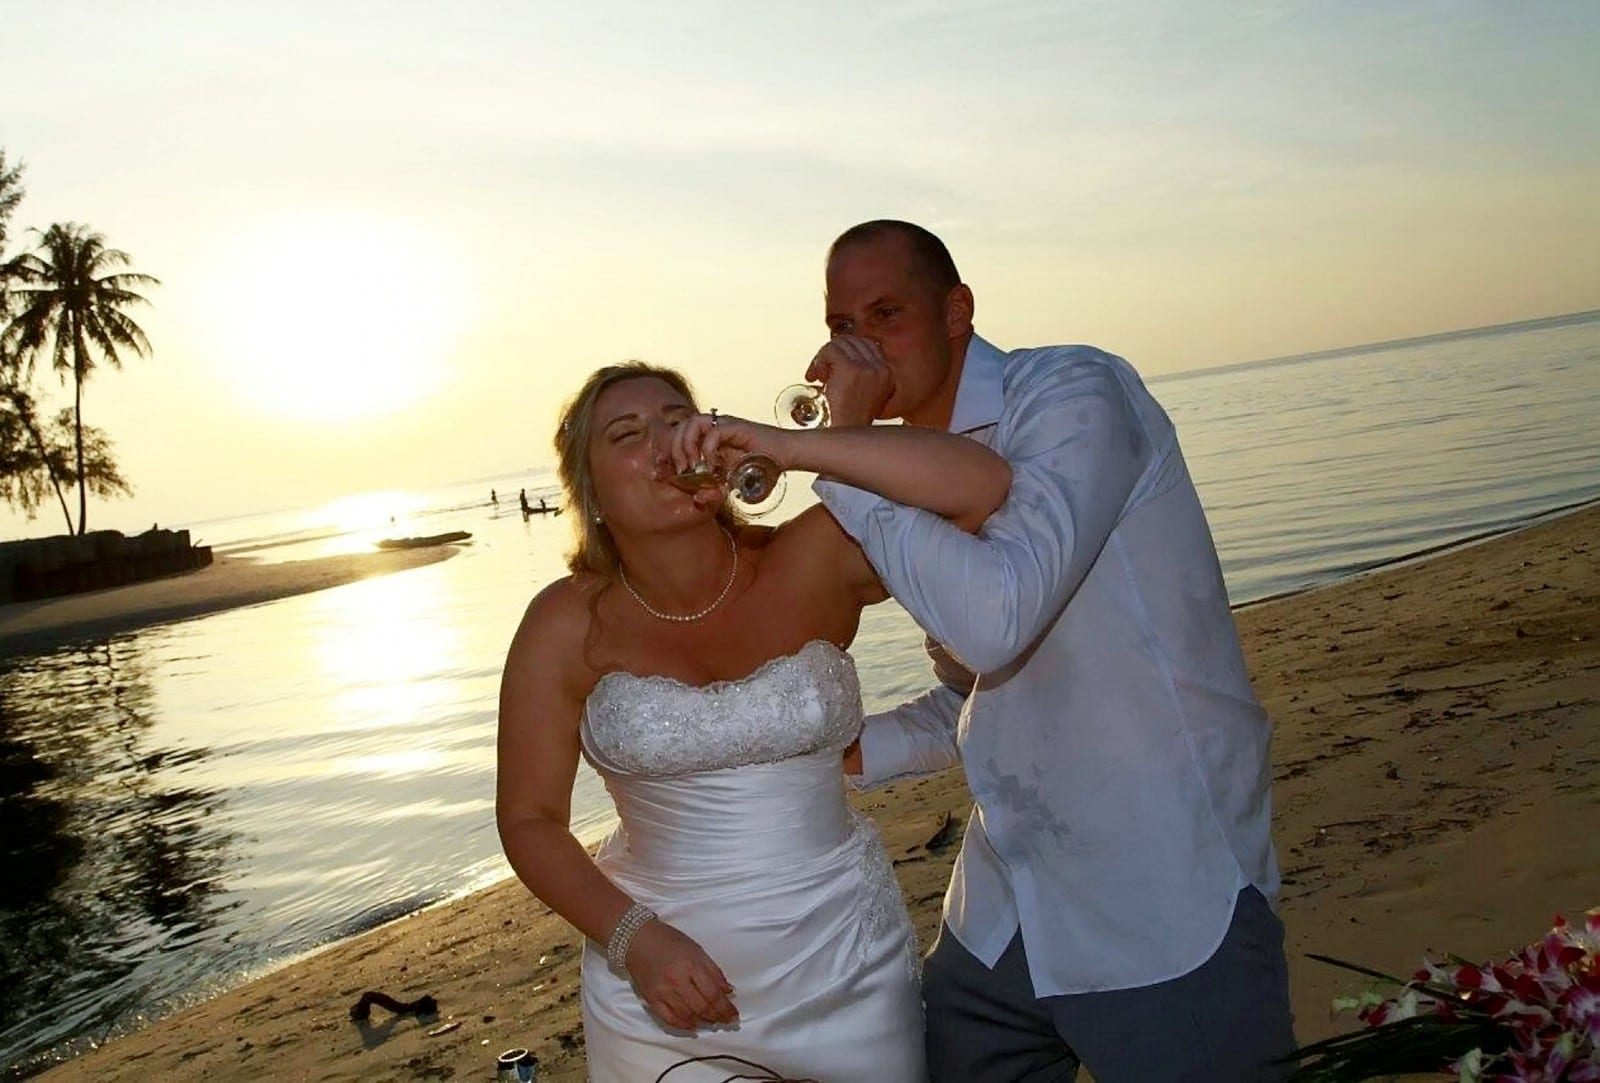 Flaming Heck! A Coconut Almost Killed Me - Just Days After My Wedding